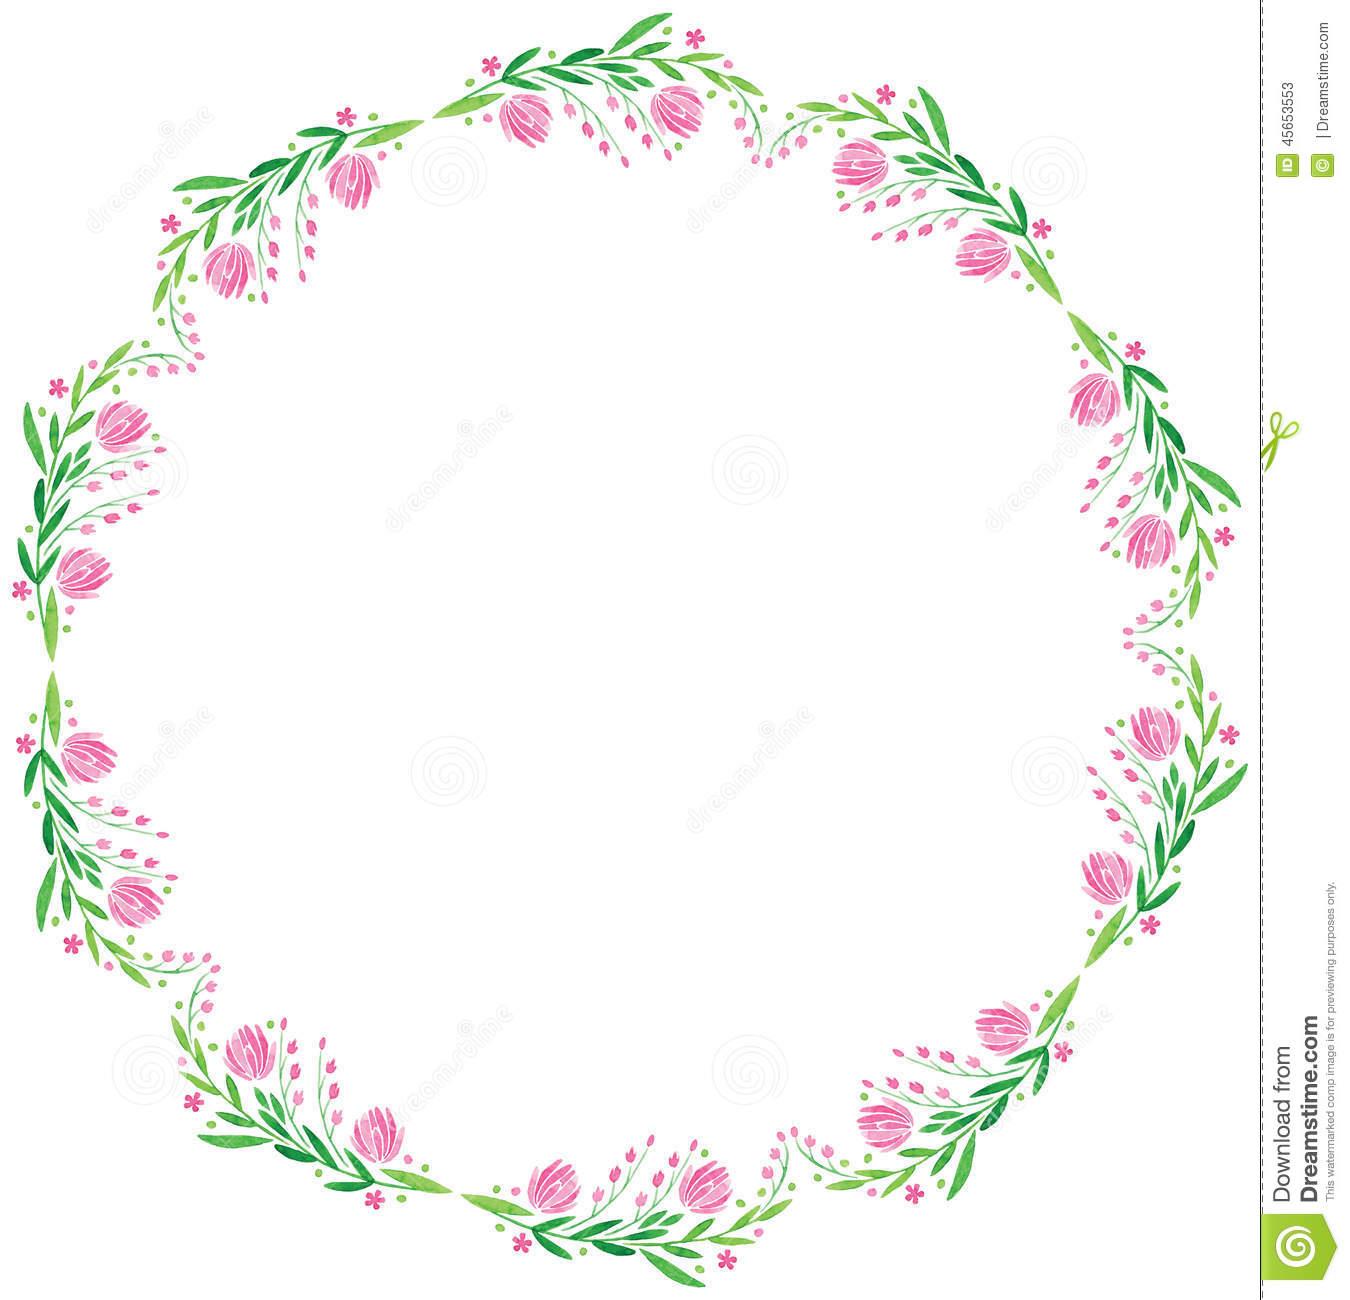 Watercolor Vector Round Frame - Big Pink Flower Illustration ...